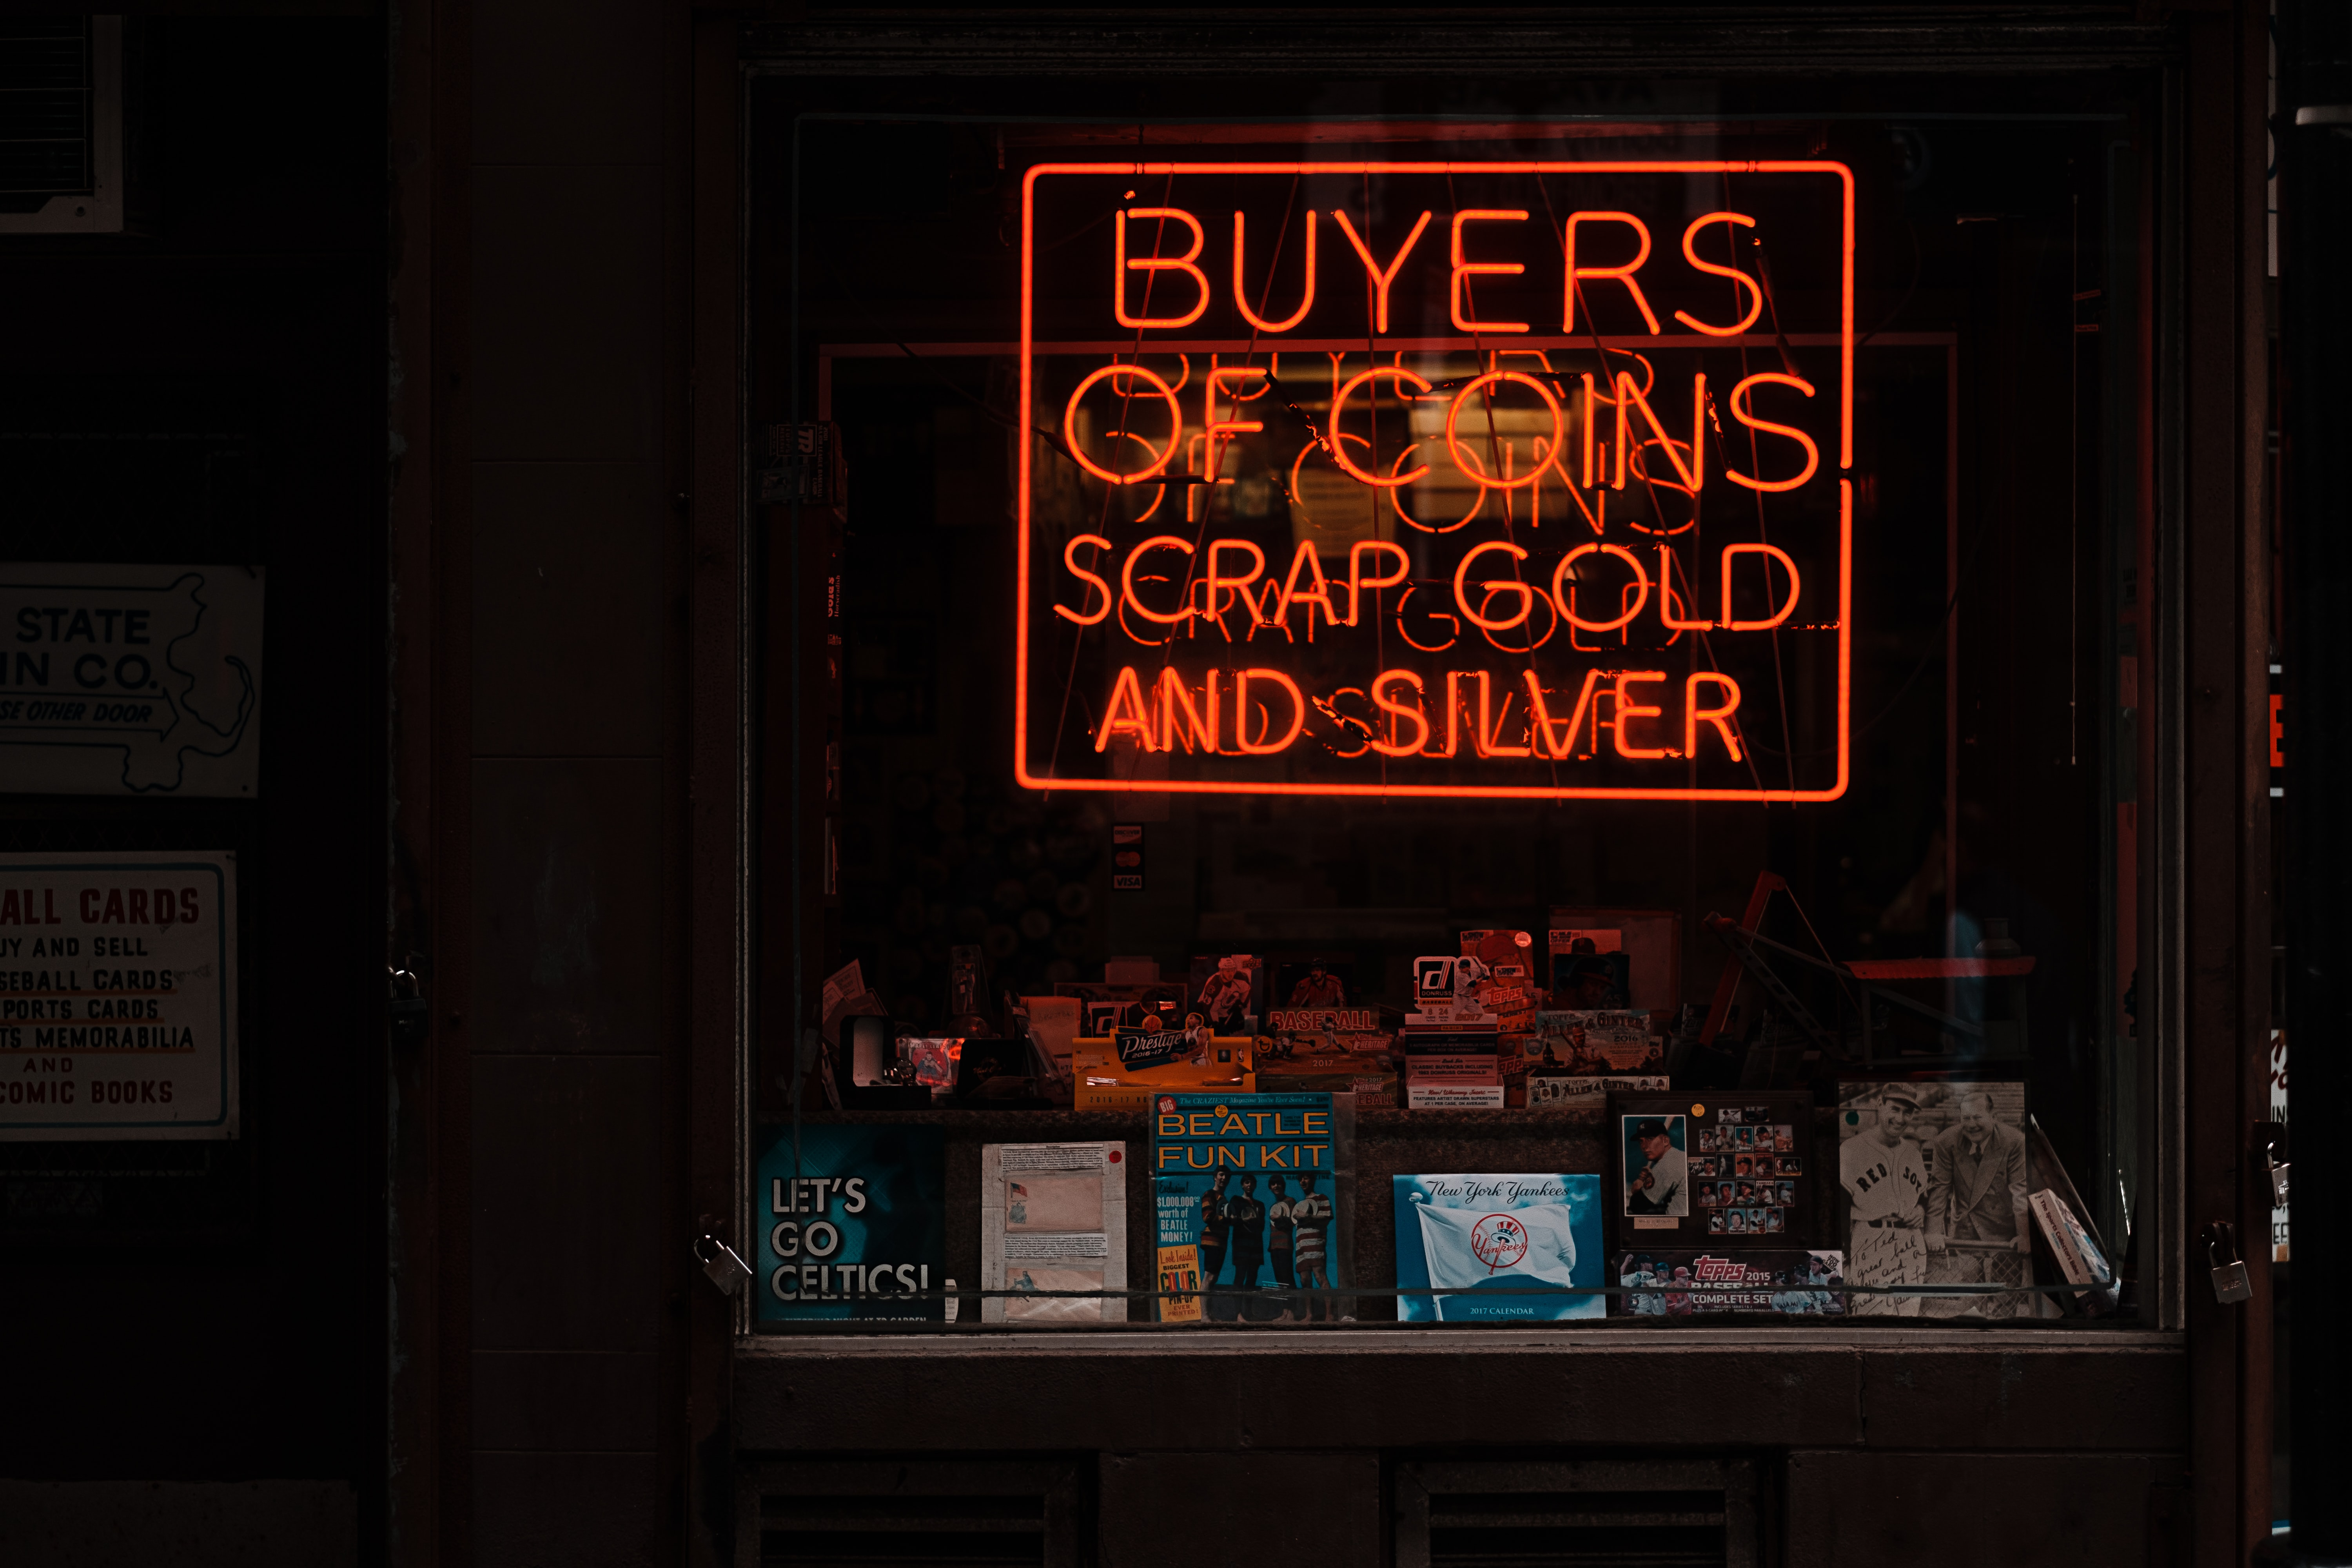 Red neon sign reading Buyers of Coins above stacks of books and photos in window display